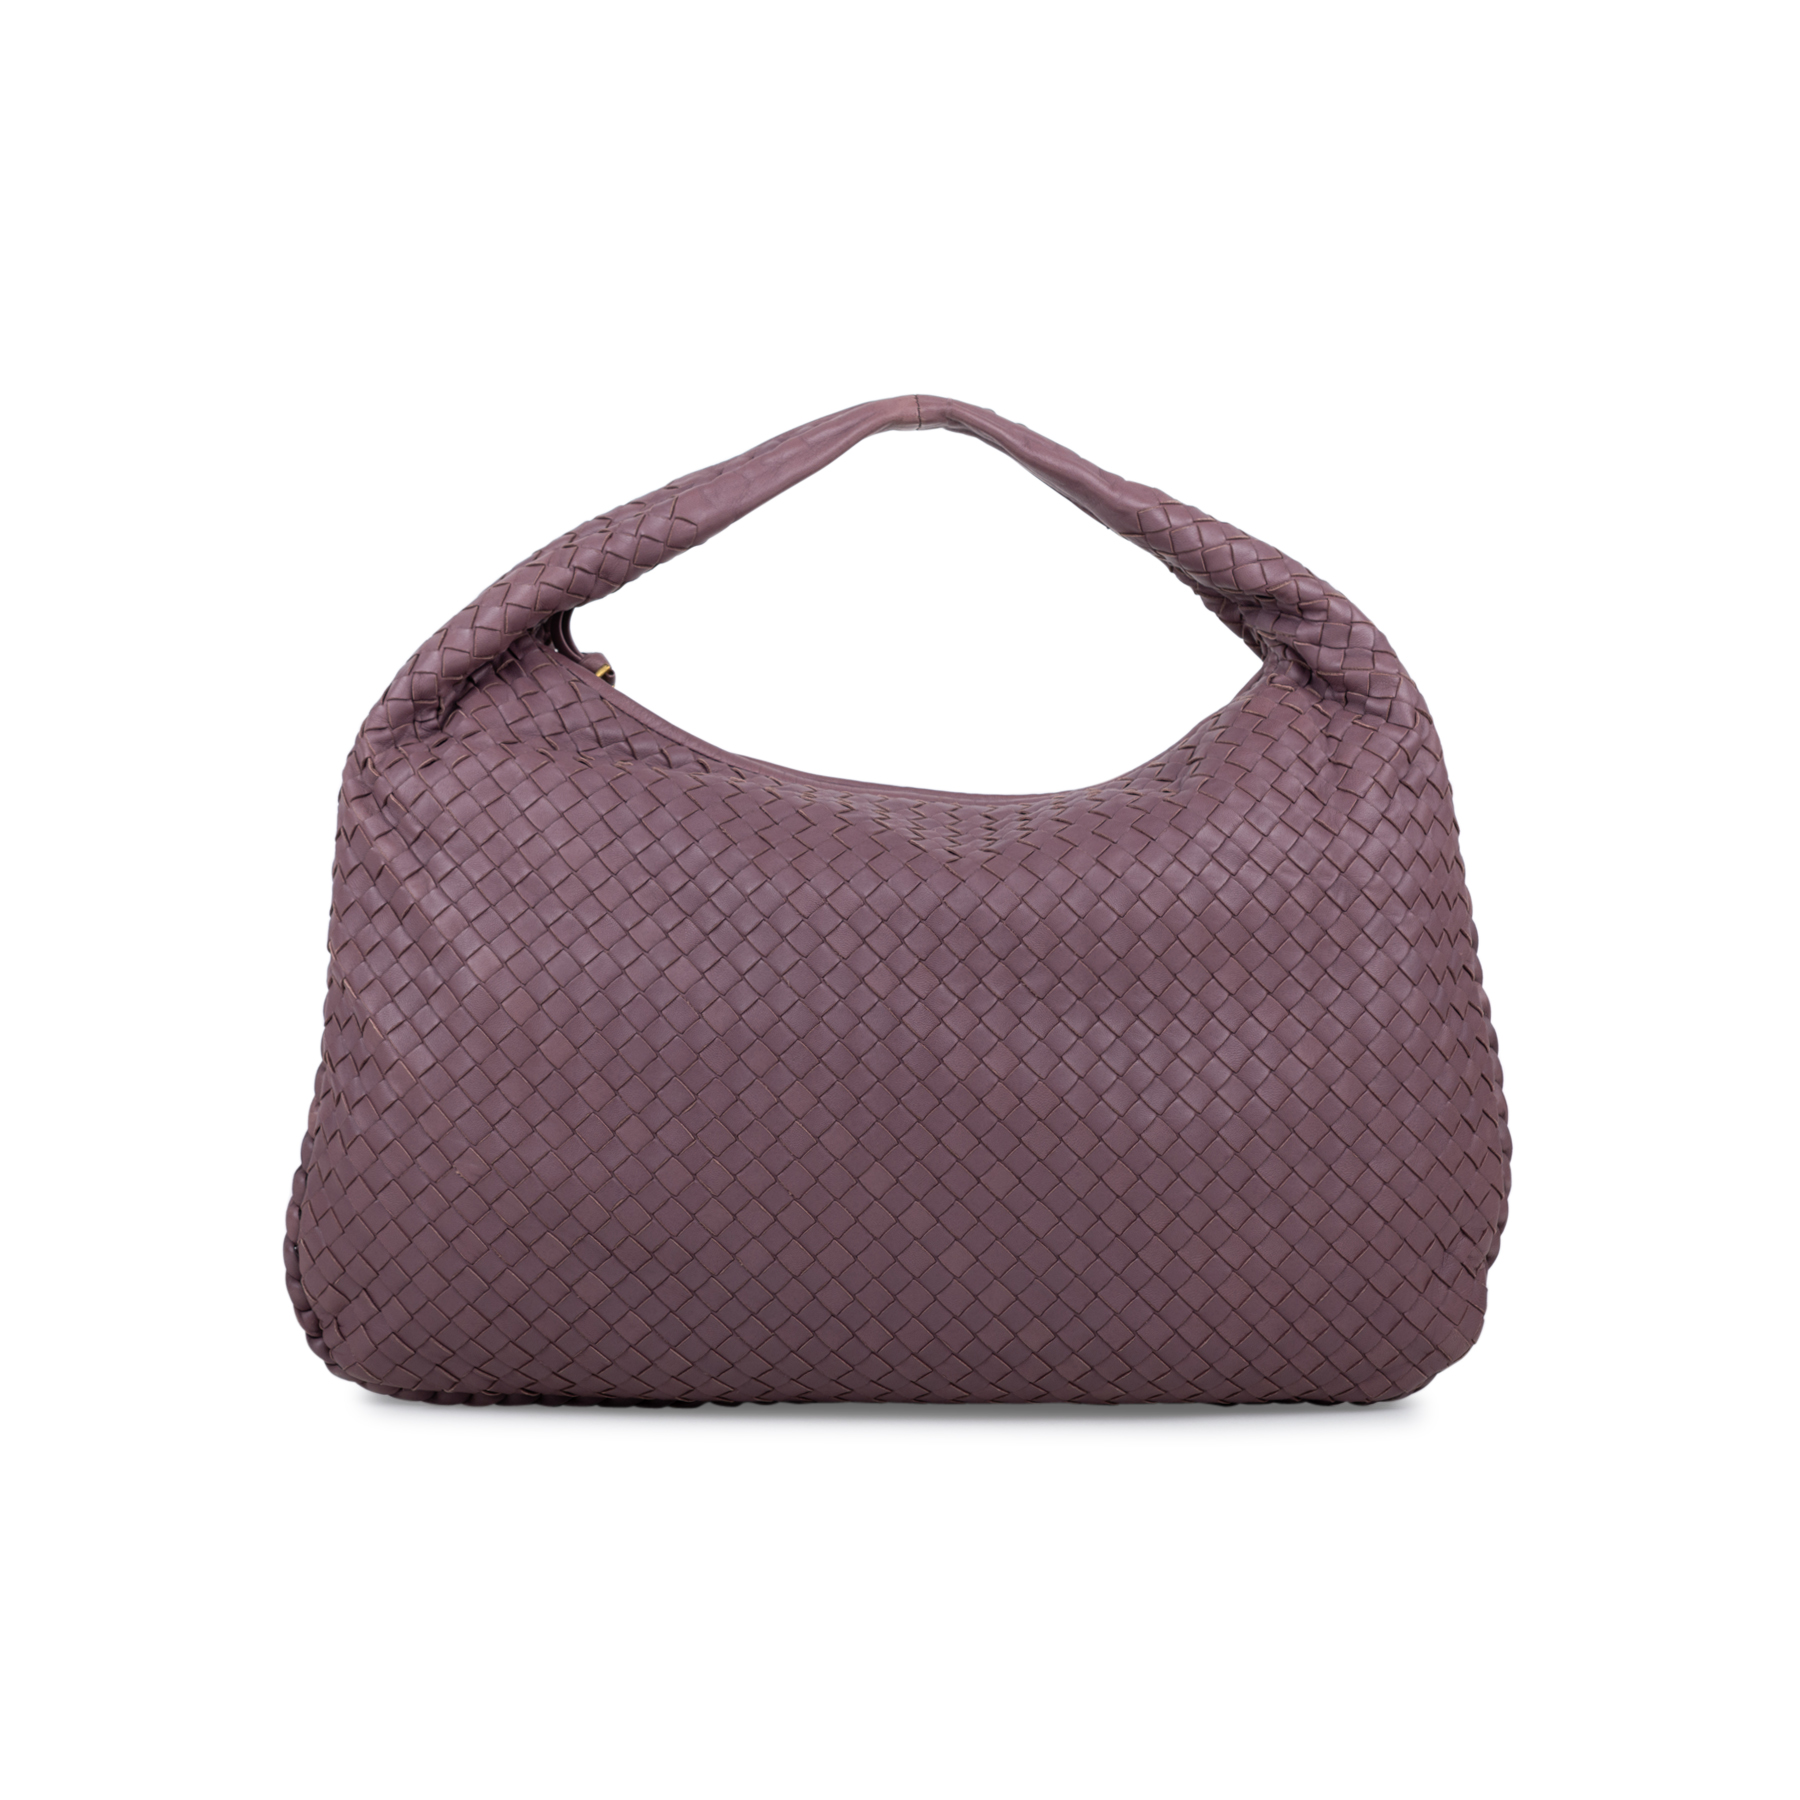 2e42f0792f55 Authentic Second Hand Bottega Veneta Medium Intrecciato Veneta Hobo Bag  (PSS-566-00065)